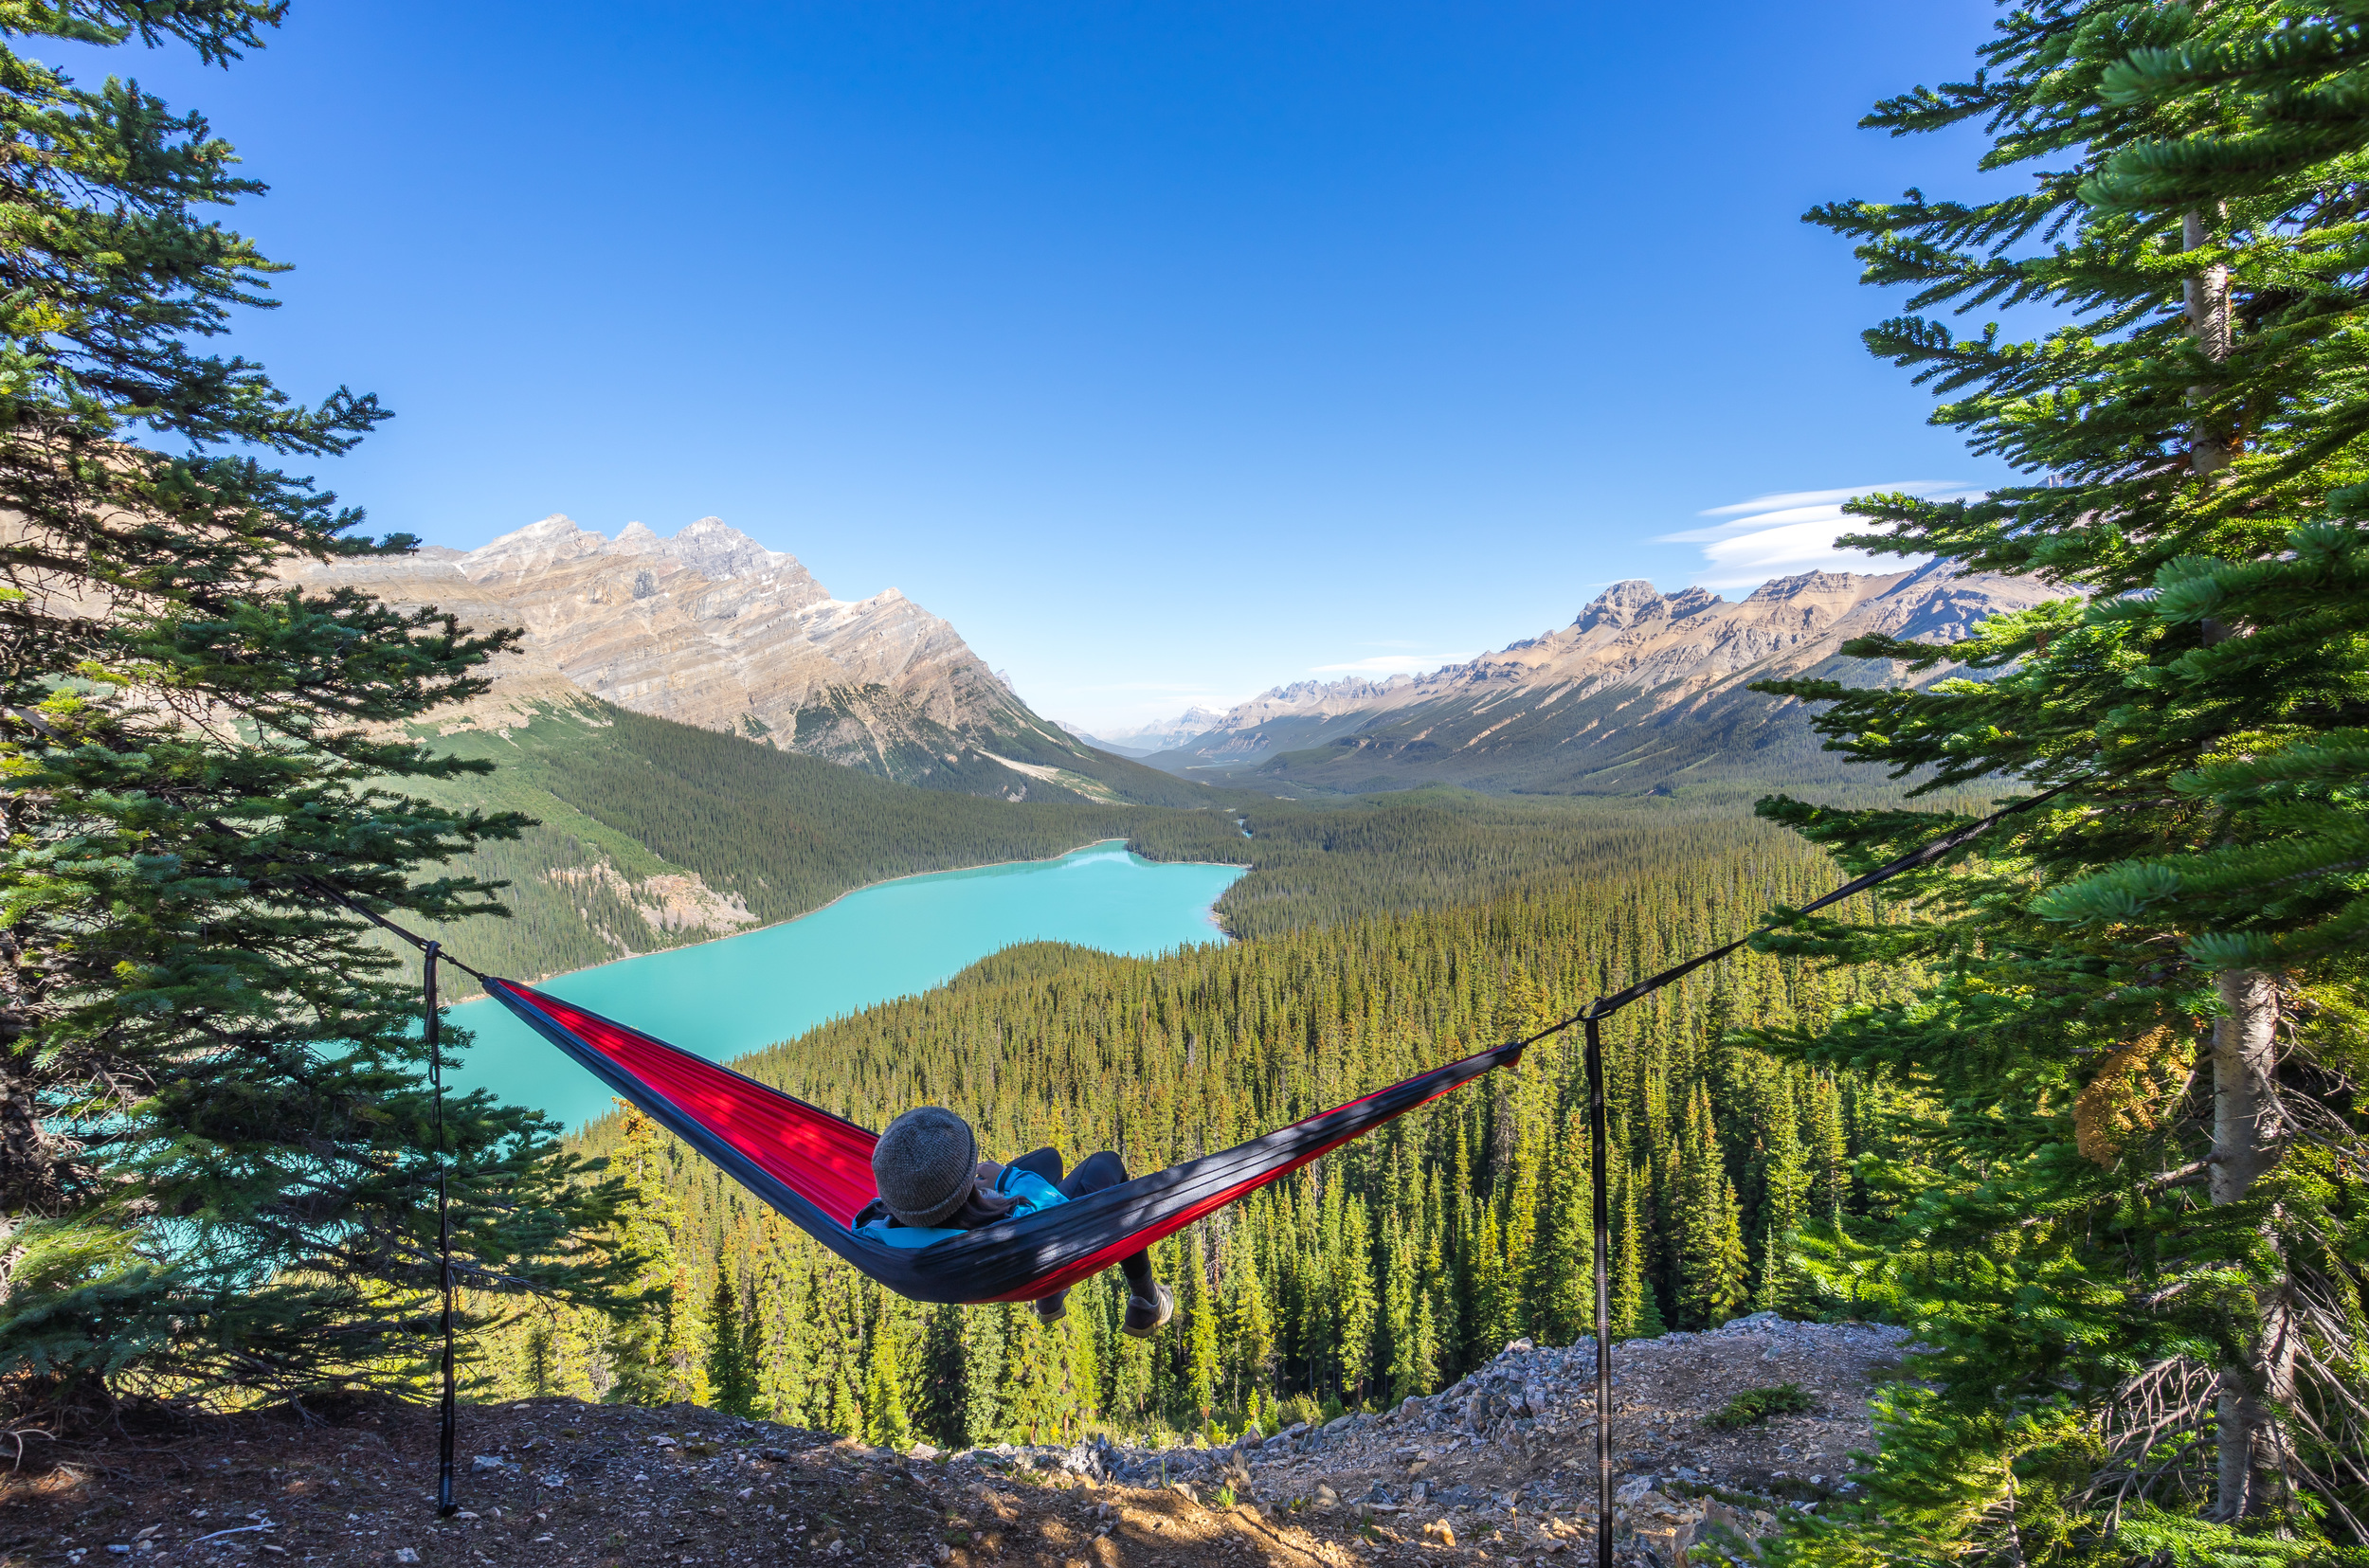 7. Find the perfect spot to hang out overlooking Peyto Lake: Could there be a more perfect spot to hammock? I don't think so.